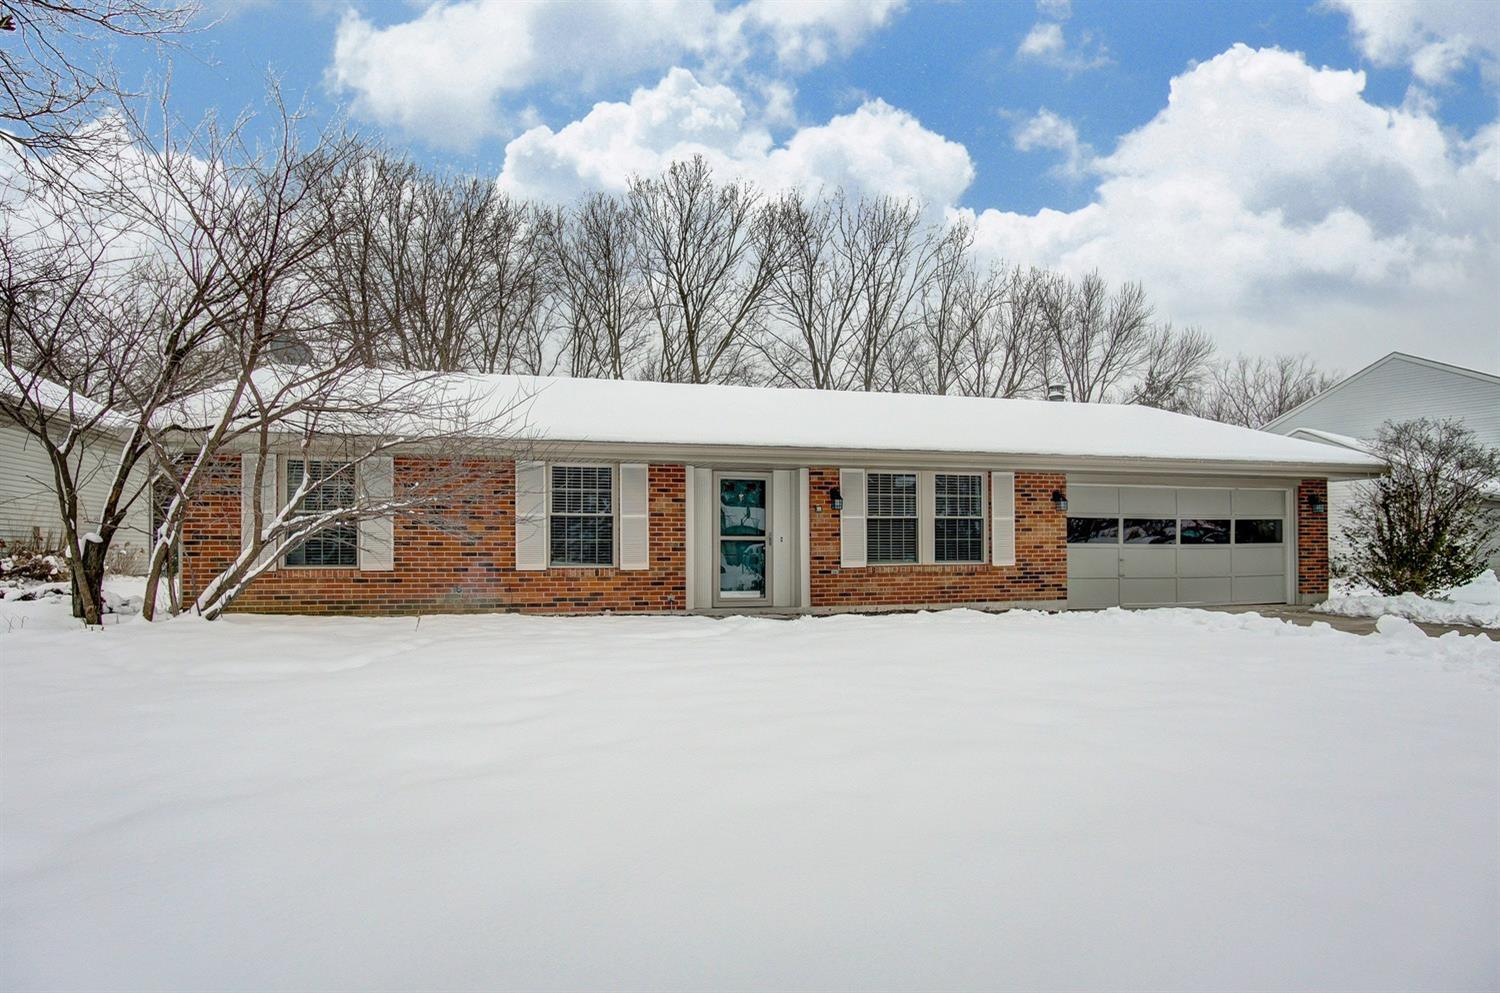 Property for sale at 115 Bayberry Drive, Springboro,  OH 45006